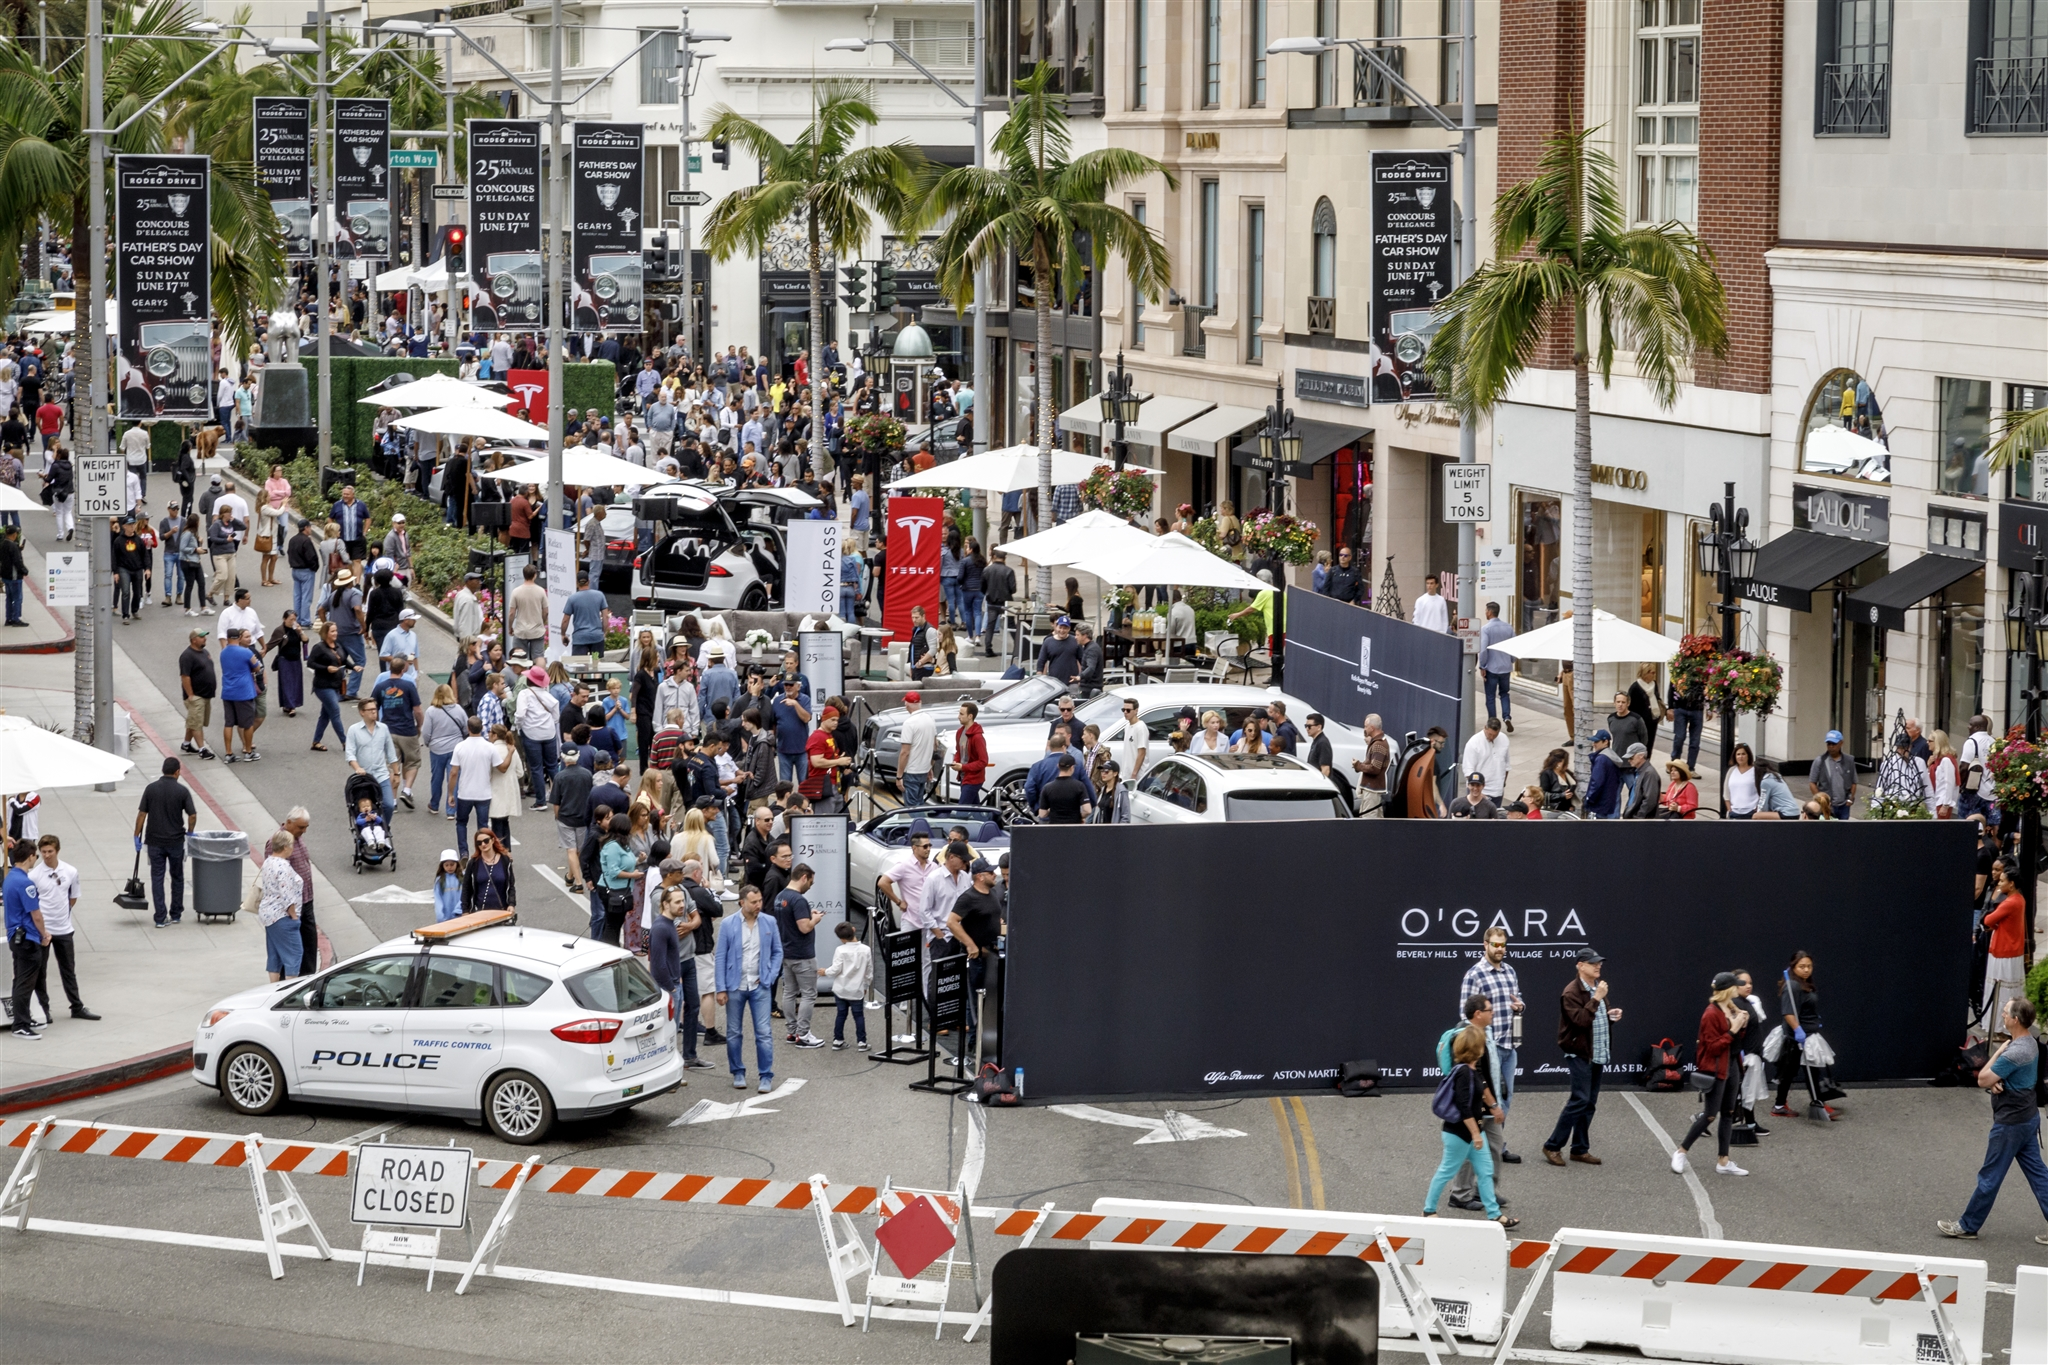 RODEO DRIVE CONCOURS DELEGANCE OGARA BEVERLY HILLS WORLD OF O - Beverly hills car show